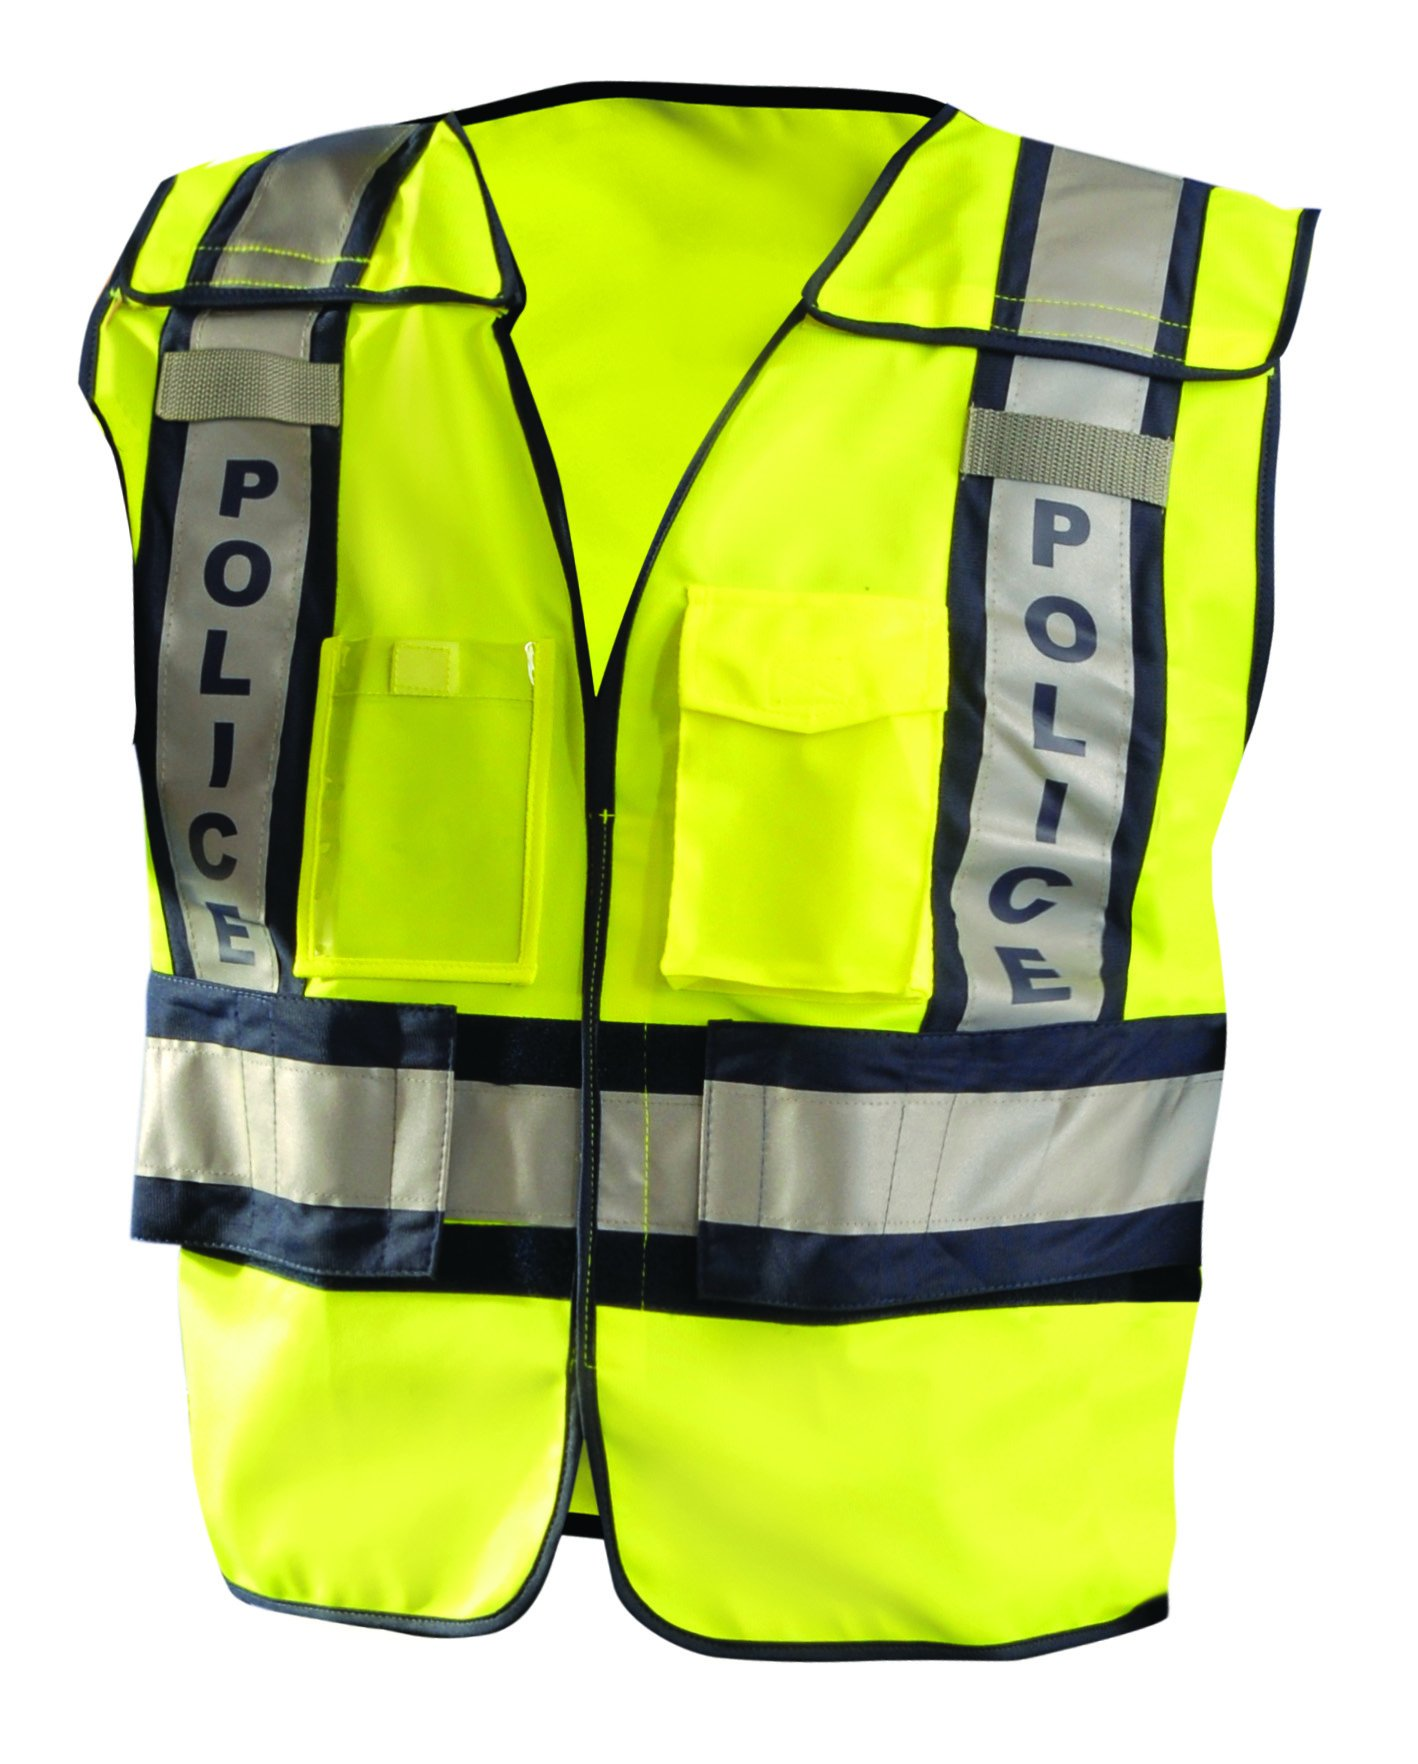 OccuNomix LUX-PSP-YM/L Public Safety Police Vest, Medium/Large, Yellow/Navy